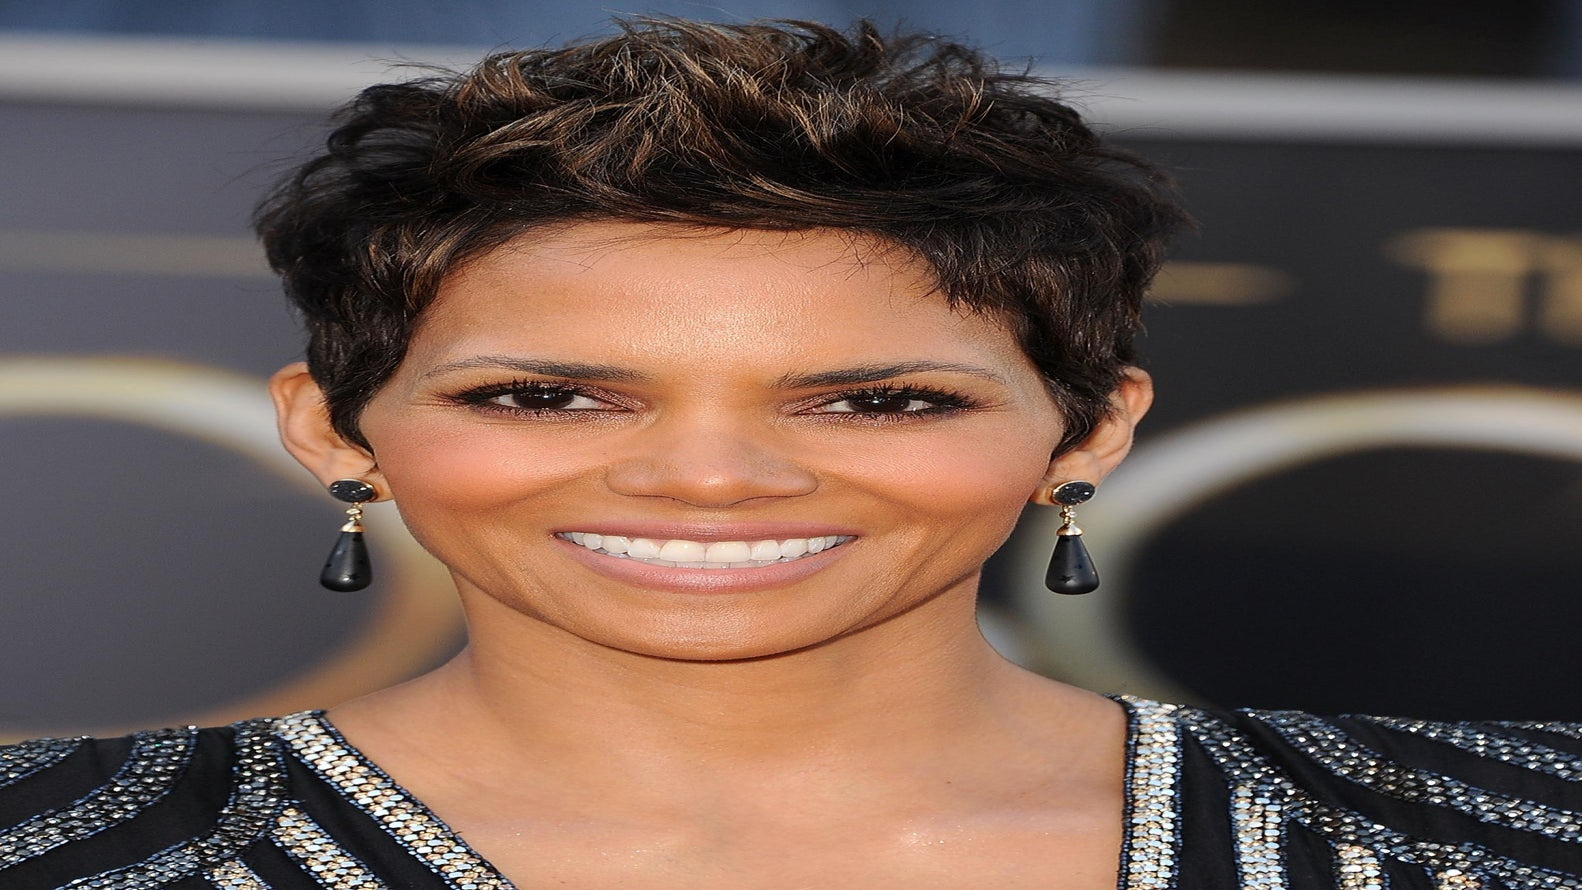 EXCLUSIVE: Halle Berry Talks 'Frankie & Alice', Producing in Hollywood